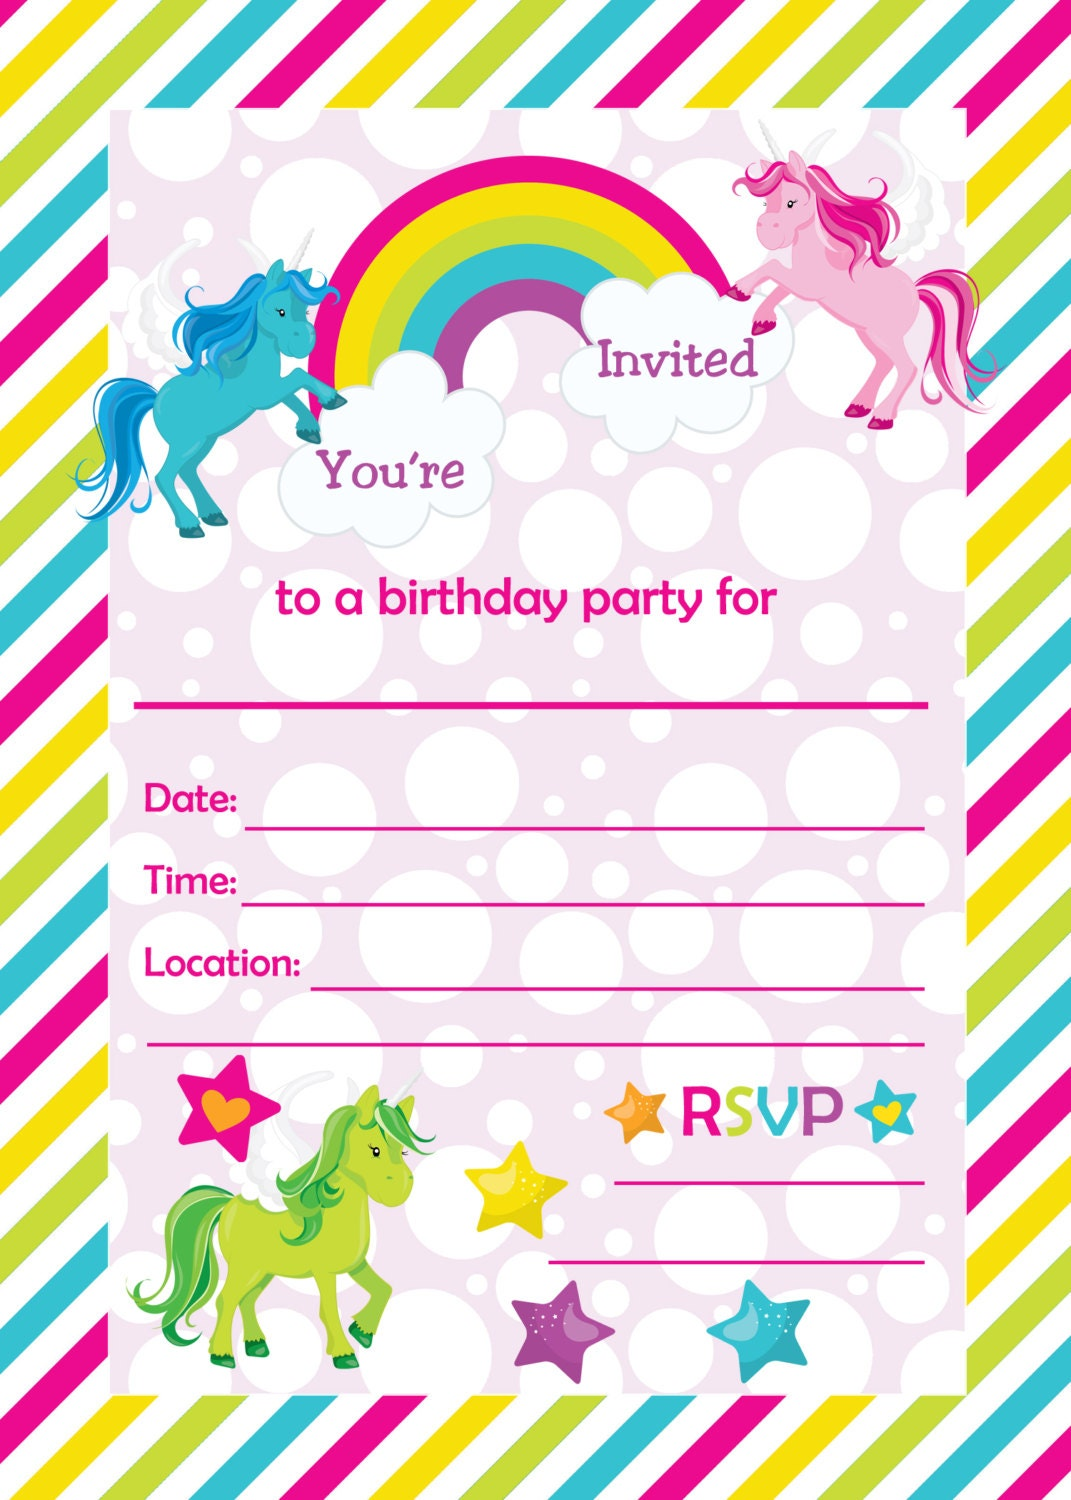 Birthday party invitations printable selol ink birthday party invitations printable stopboris